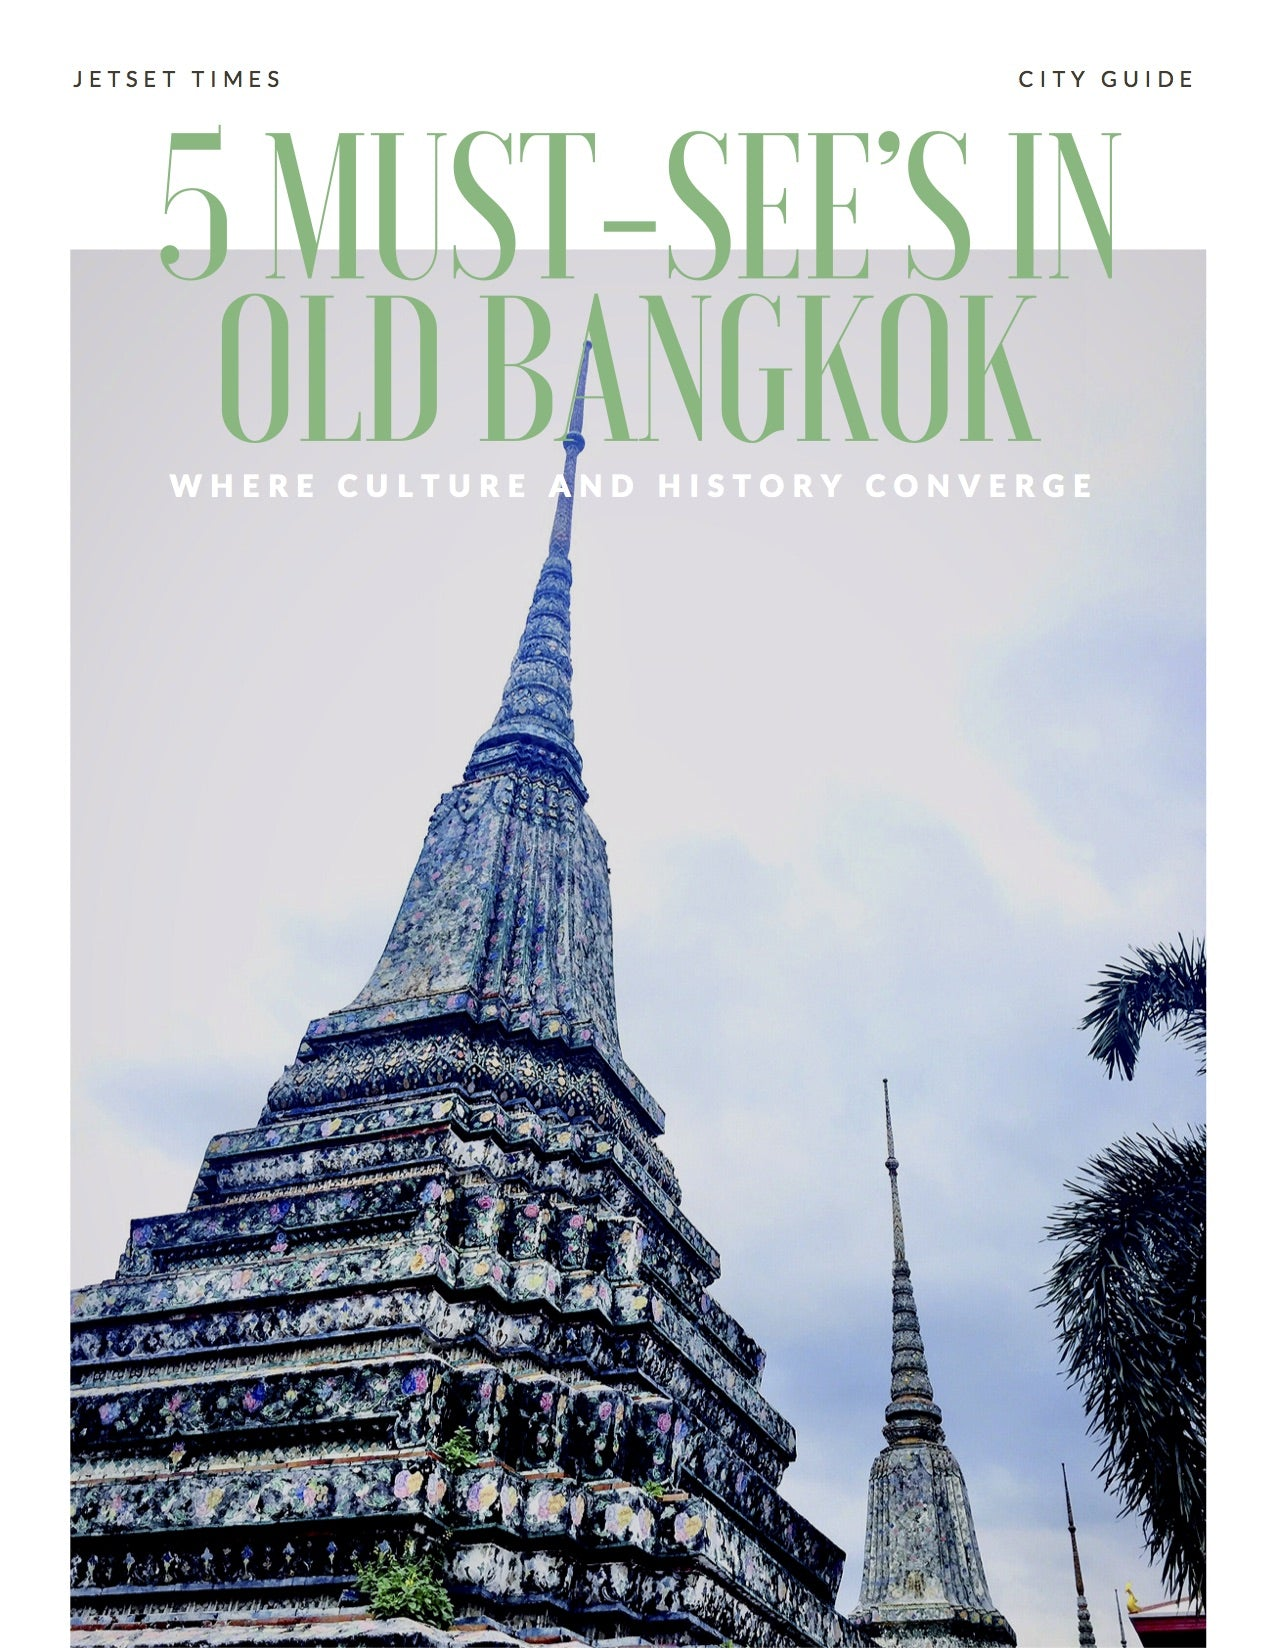 Bangkok city guide ebook pdf download jetset times shop bangkok top must sees city guide chapter for offline pdf download use by jetset times fandeluxe Image collections